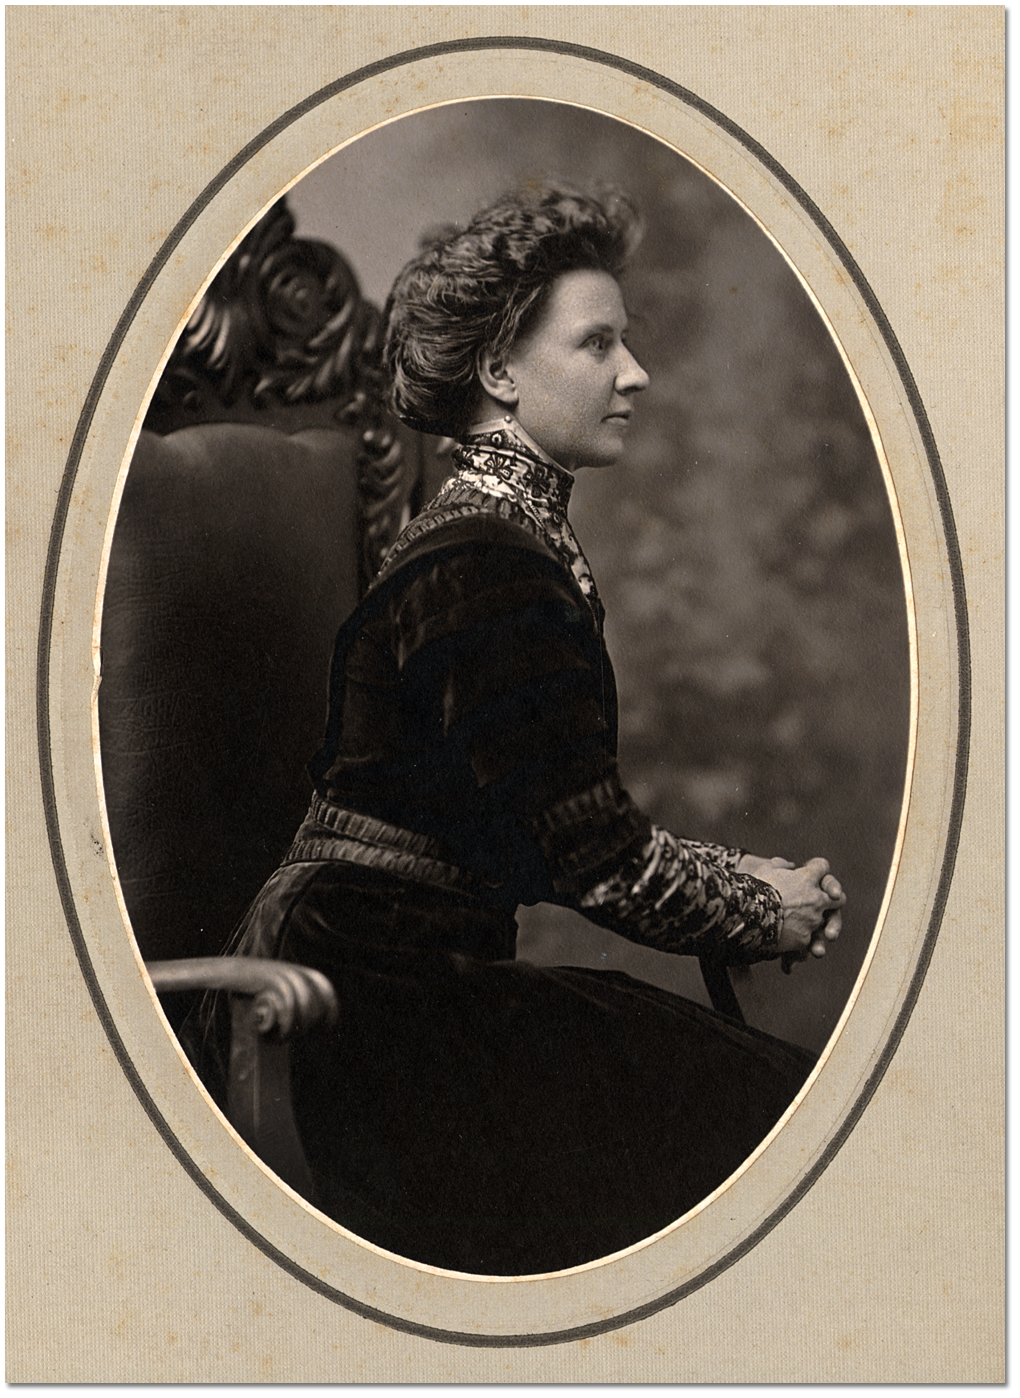 Portrait of an unidentified woman seated in a chair, [between 1900 and 1920]